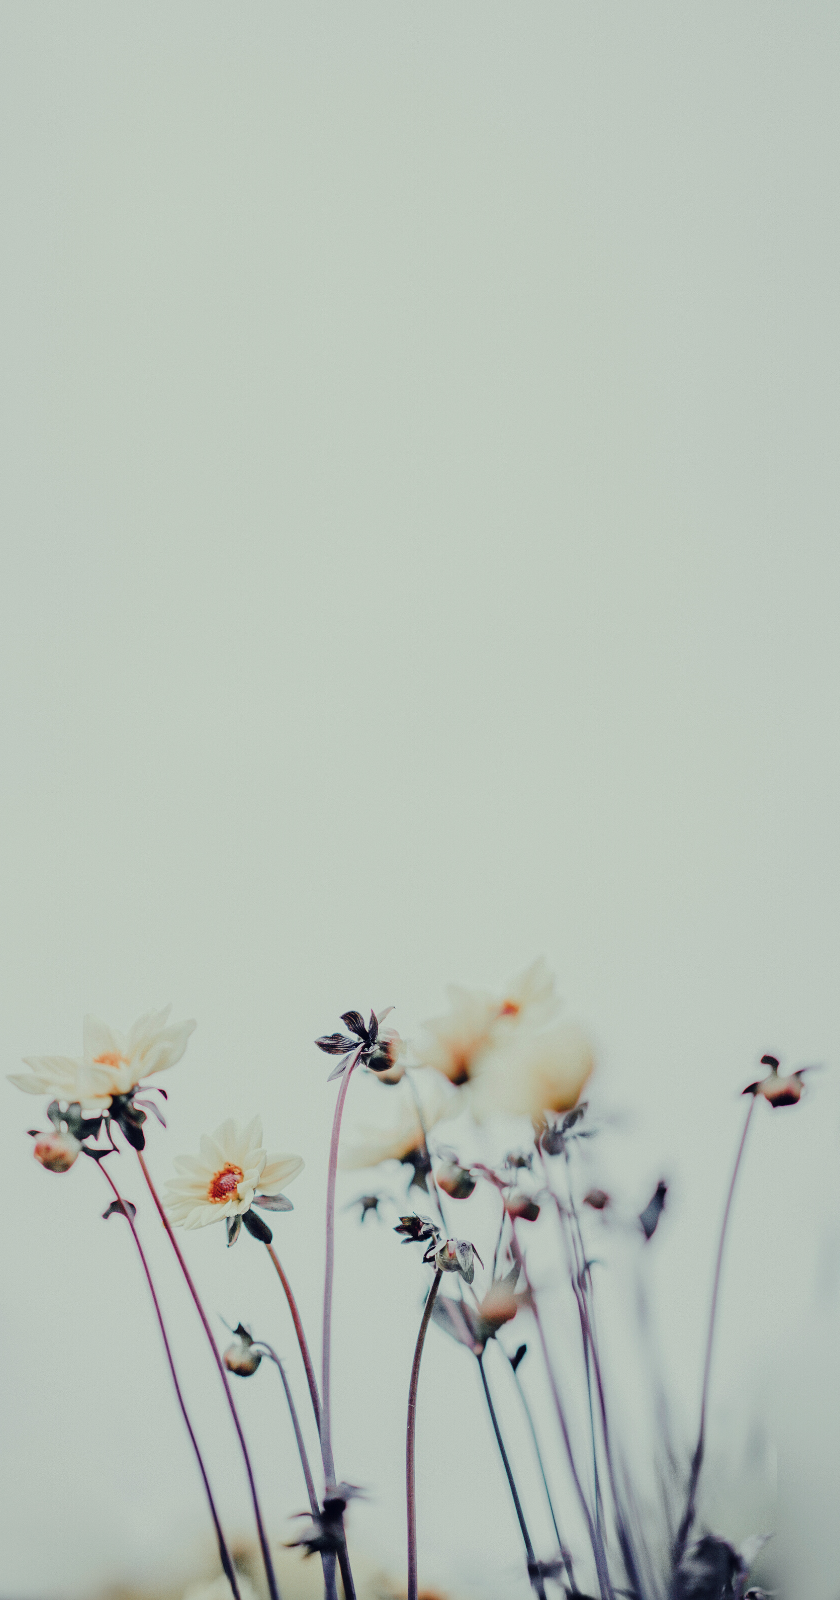 Wallpapers For Iphone 25 Best Floral Wallpapers From Tumblr In 2020 Pink Wallpaper Iphone Floral Wallpaper Flower Wallpaper